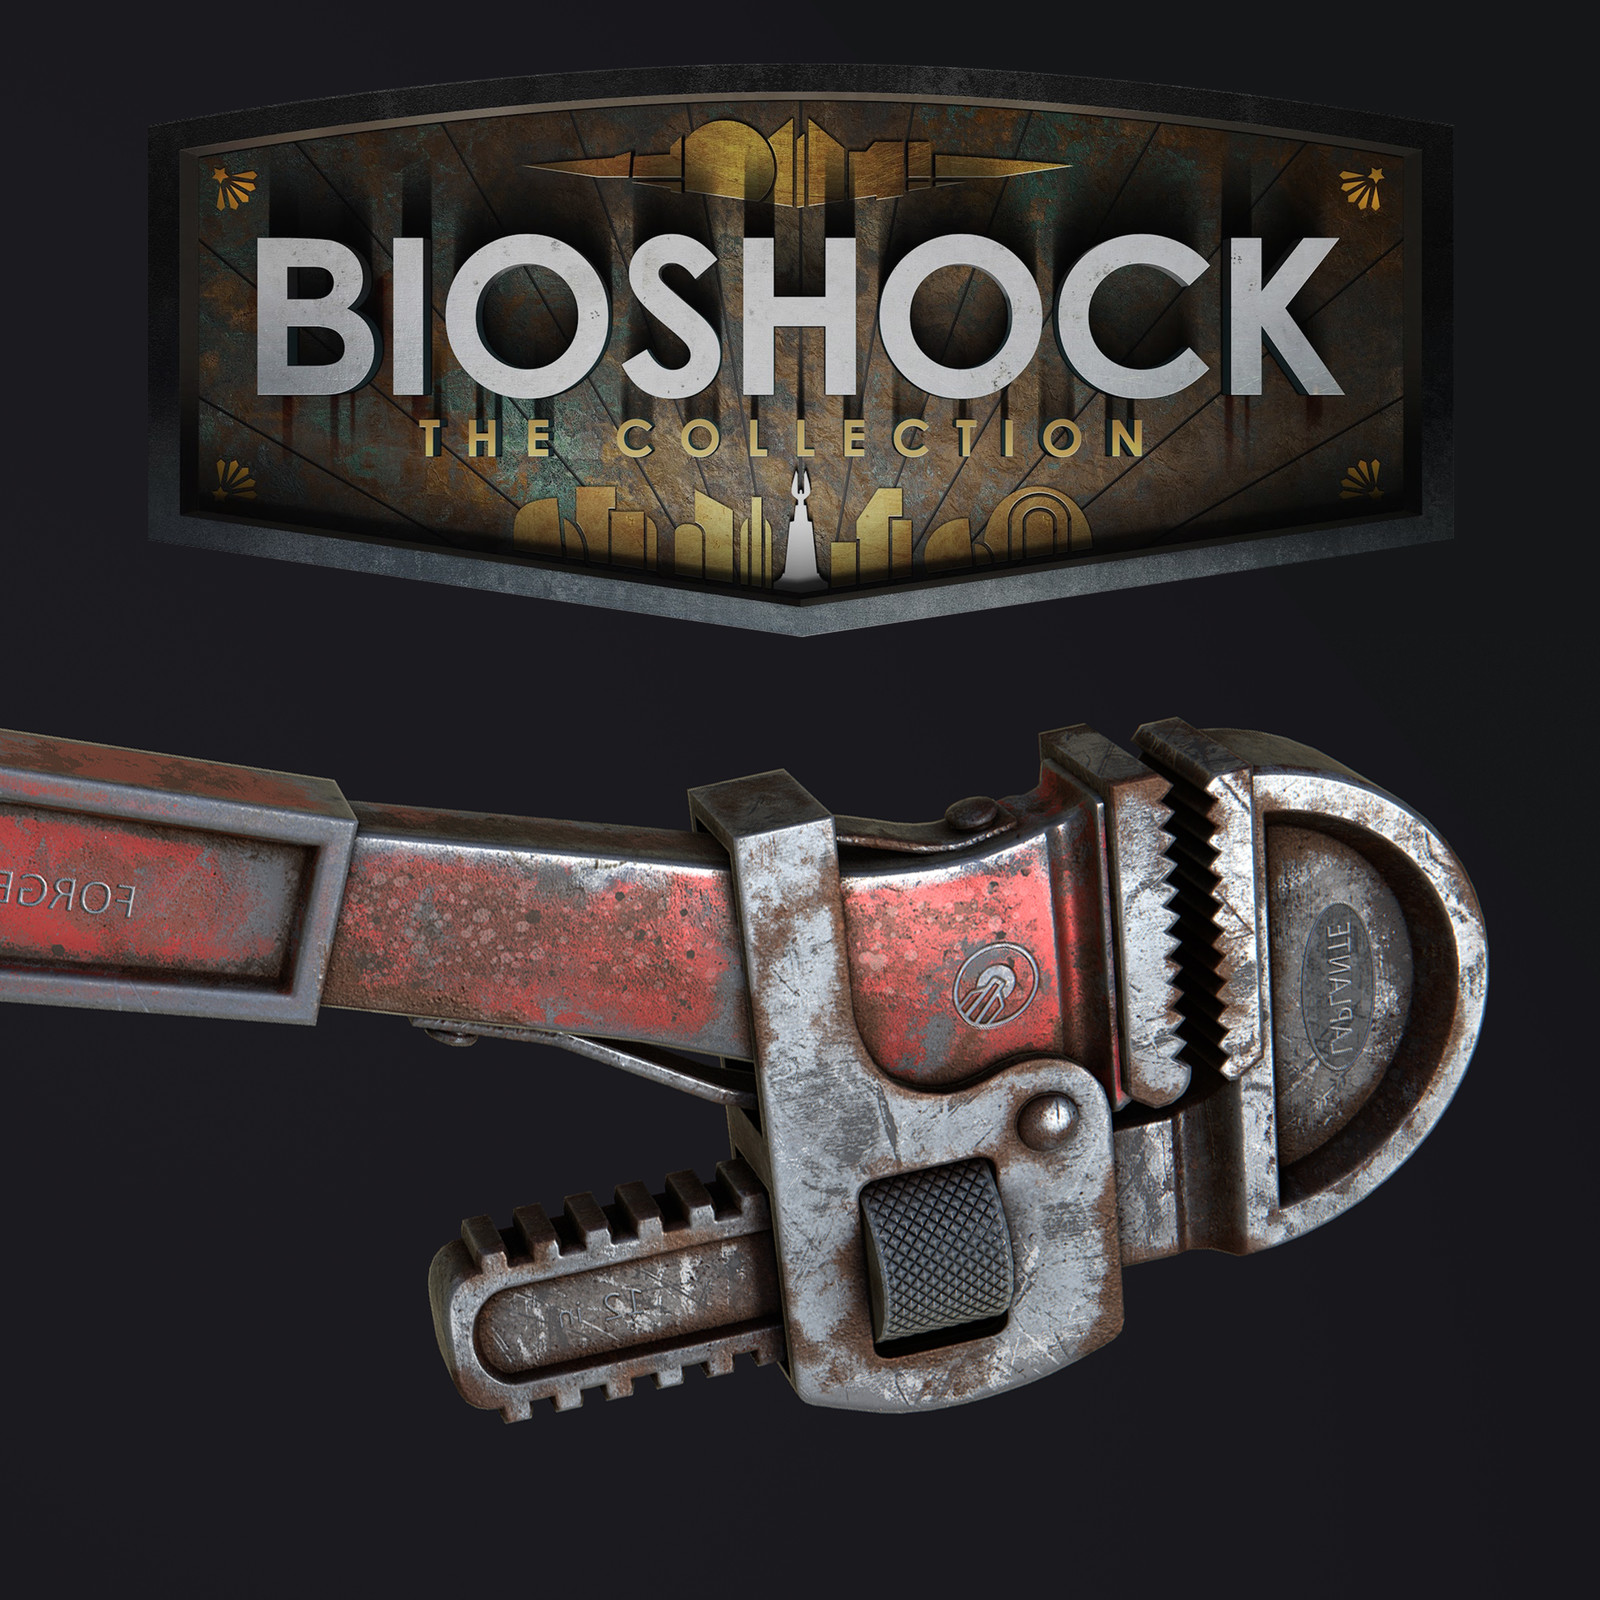 Bioshock: The Collection - Wrench